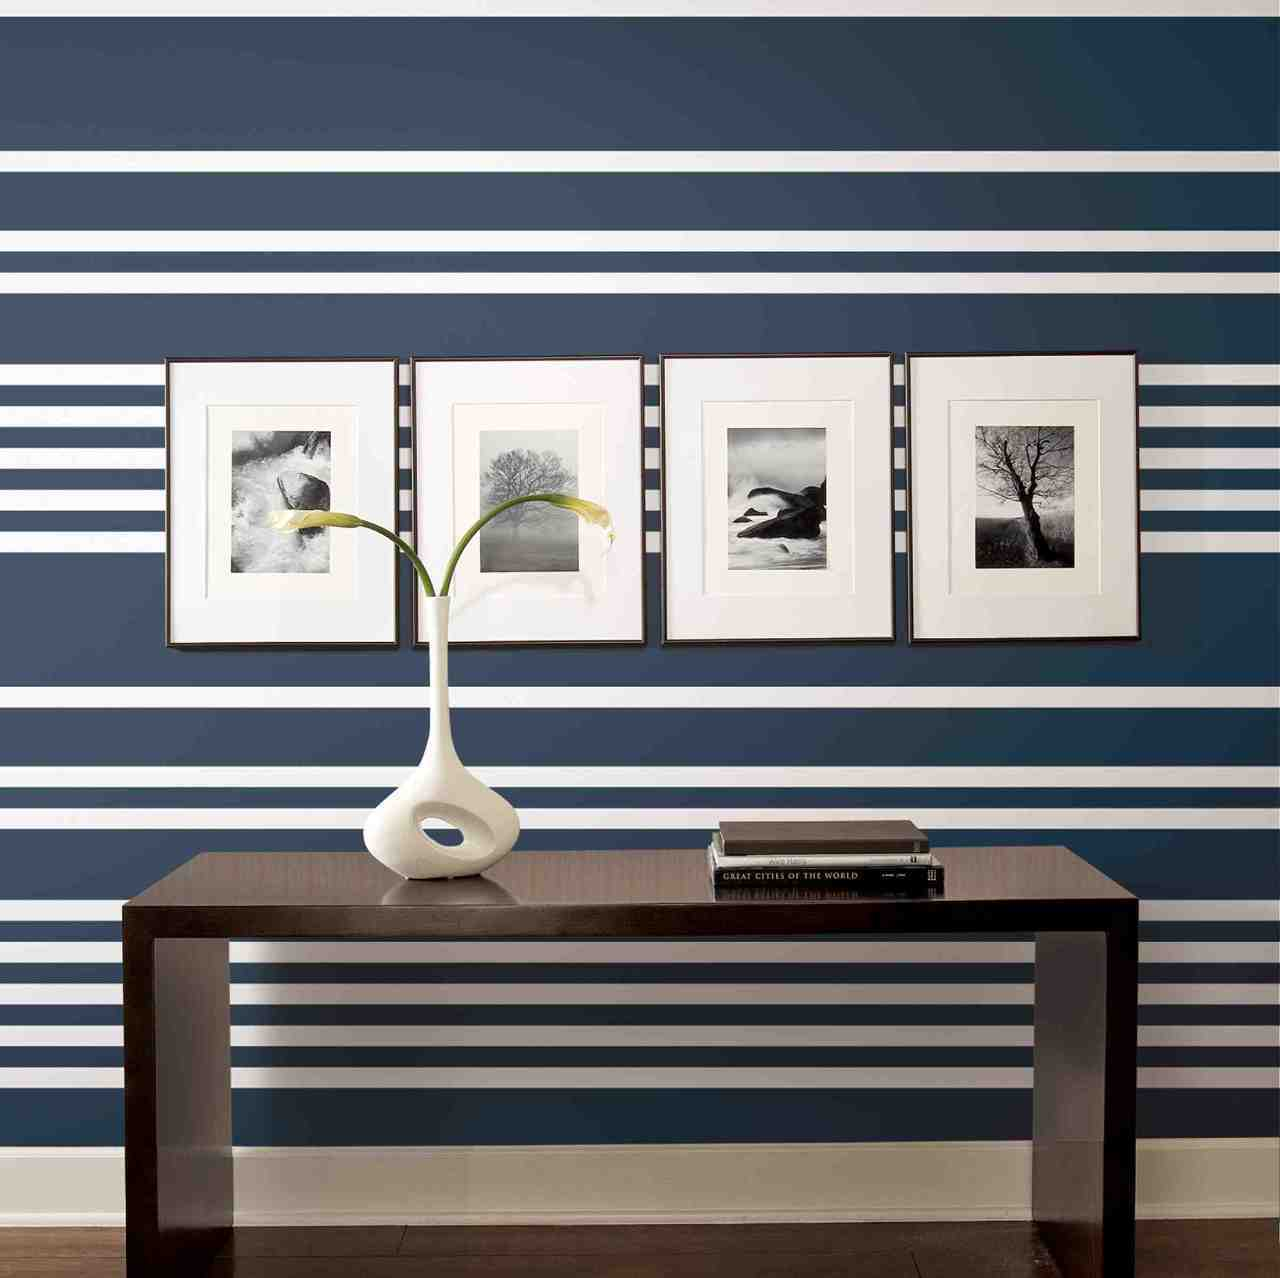 York Wallcoverings Stripes Resource Library SR1617 Scholarship 1280x1278